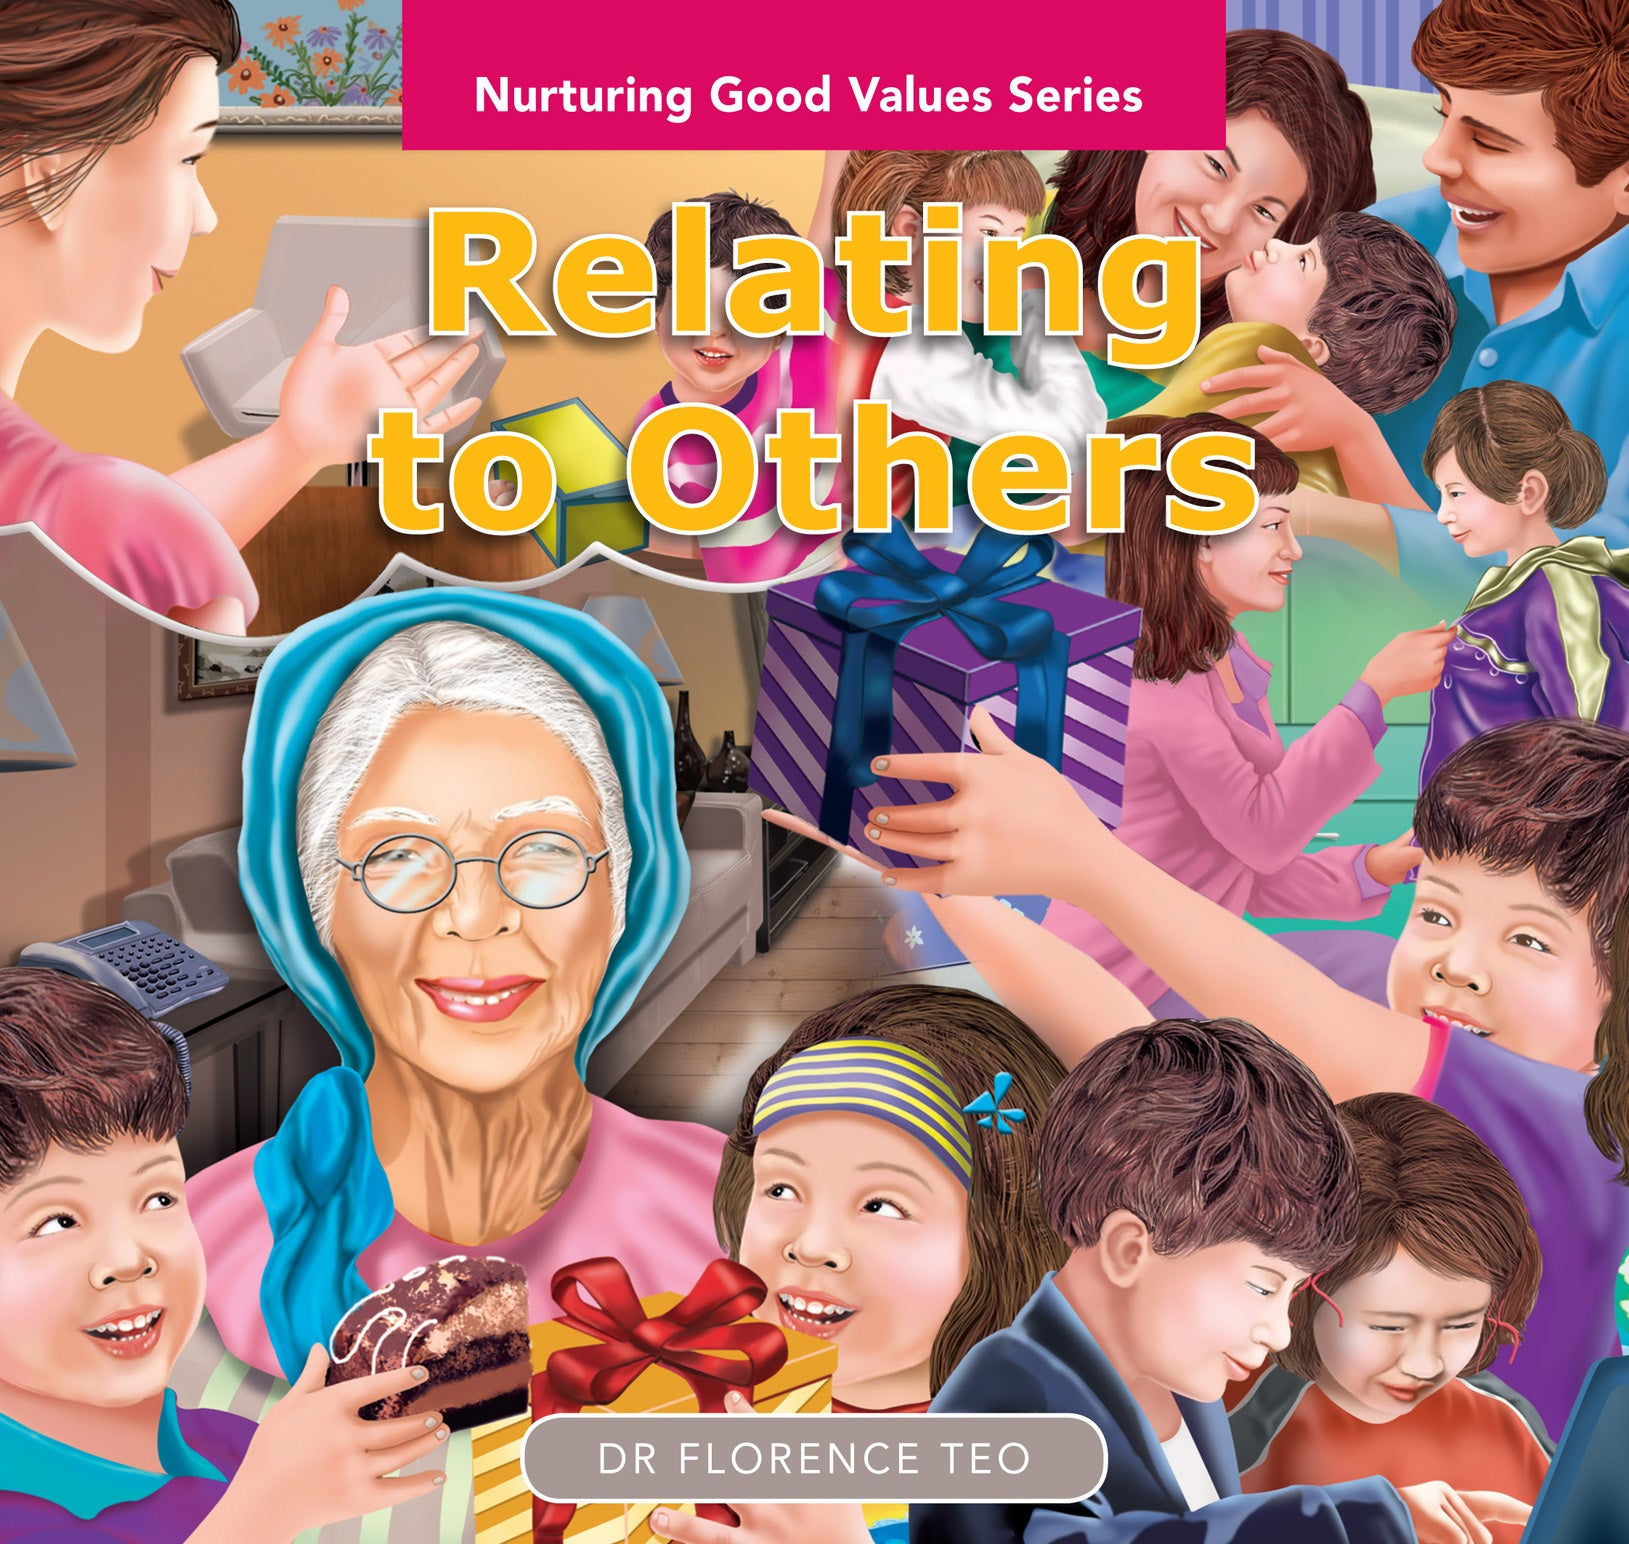 Nurturing Good Values Series: Relating to Others (Set of 6 booklets)